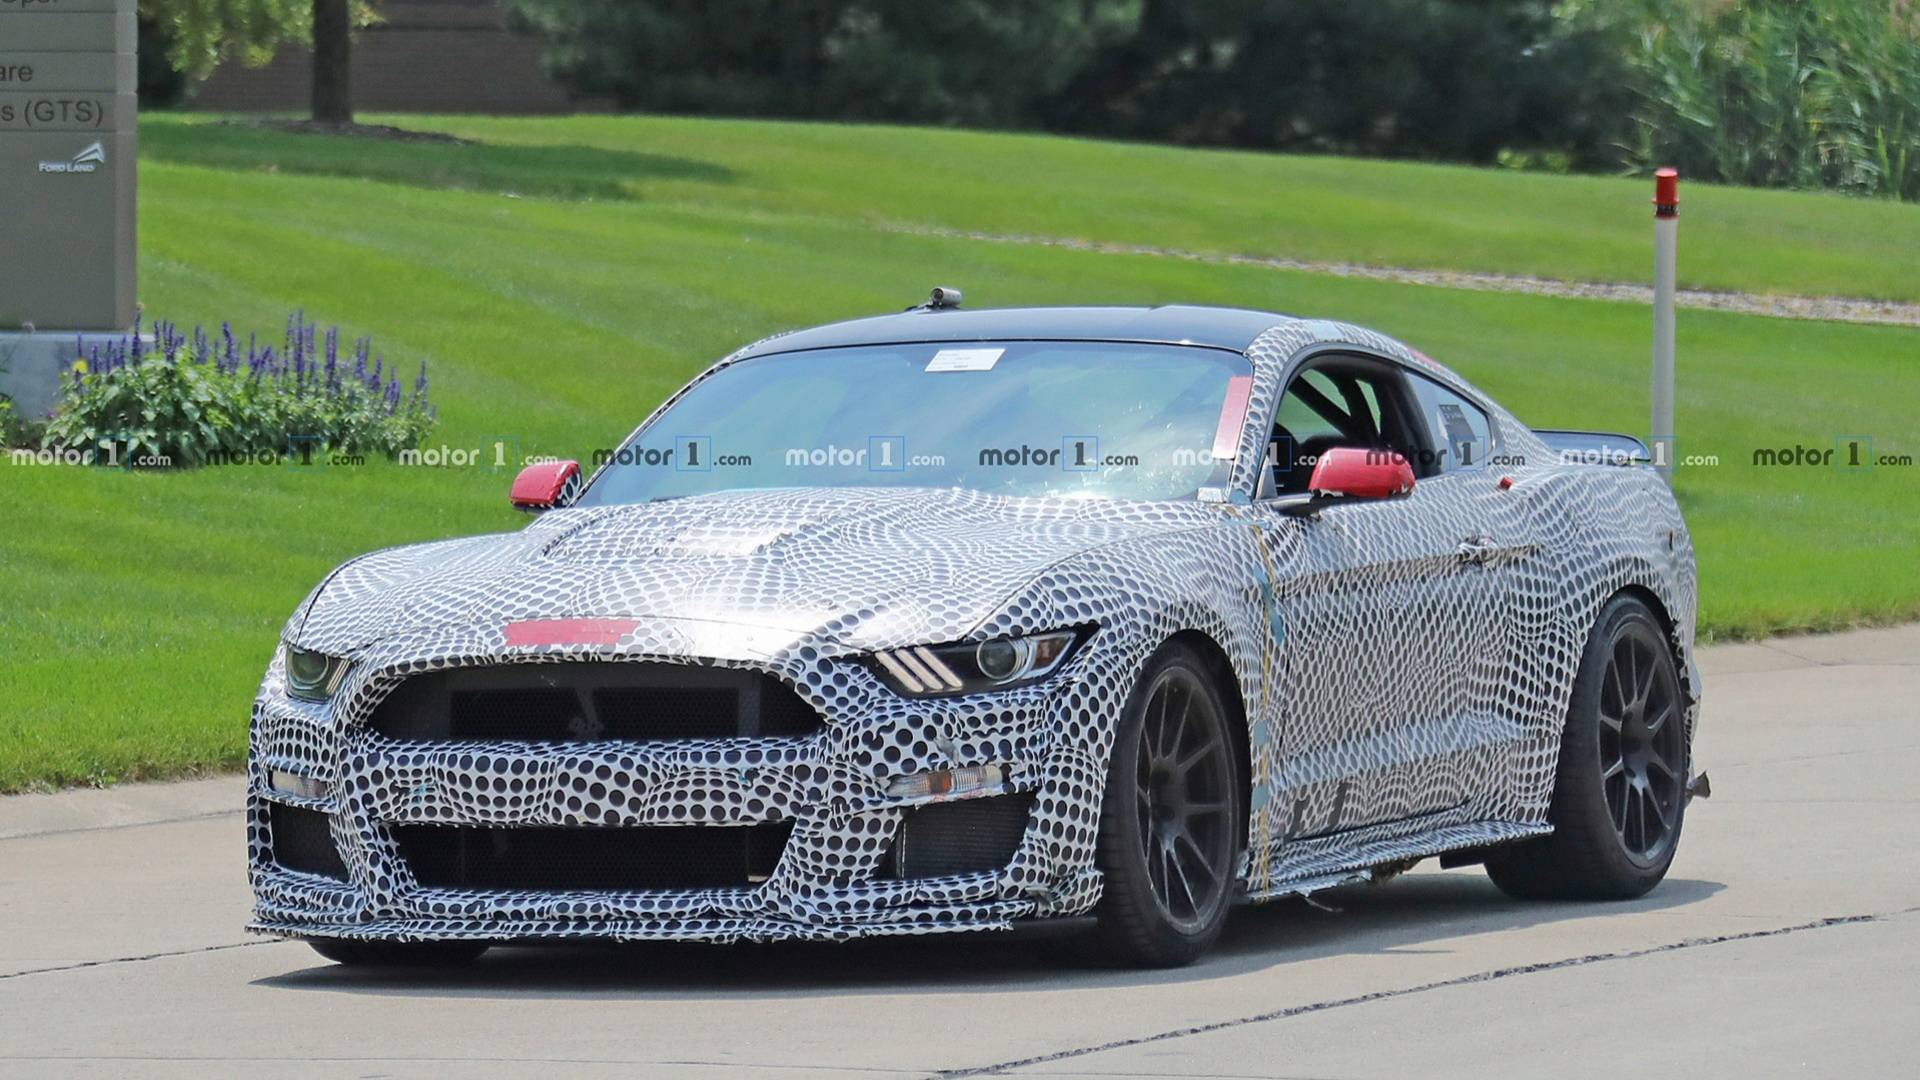 42 New Spy Shots Ford Mustang Svt Gt 500 Ratings